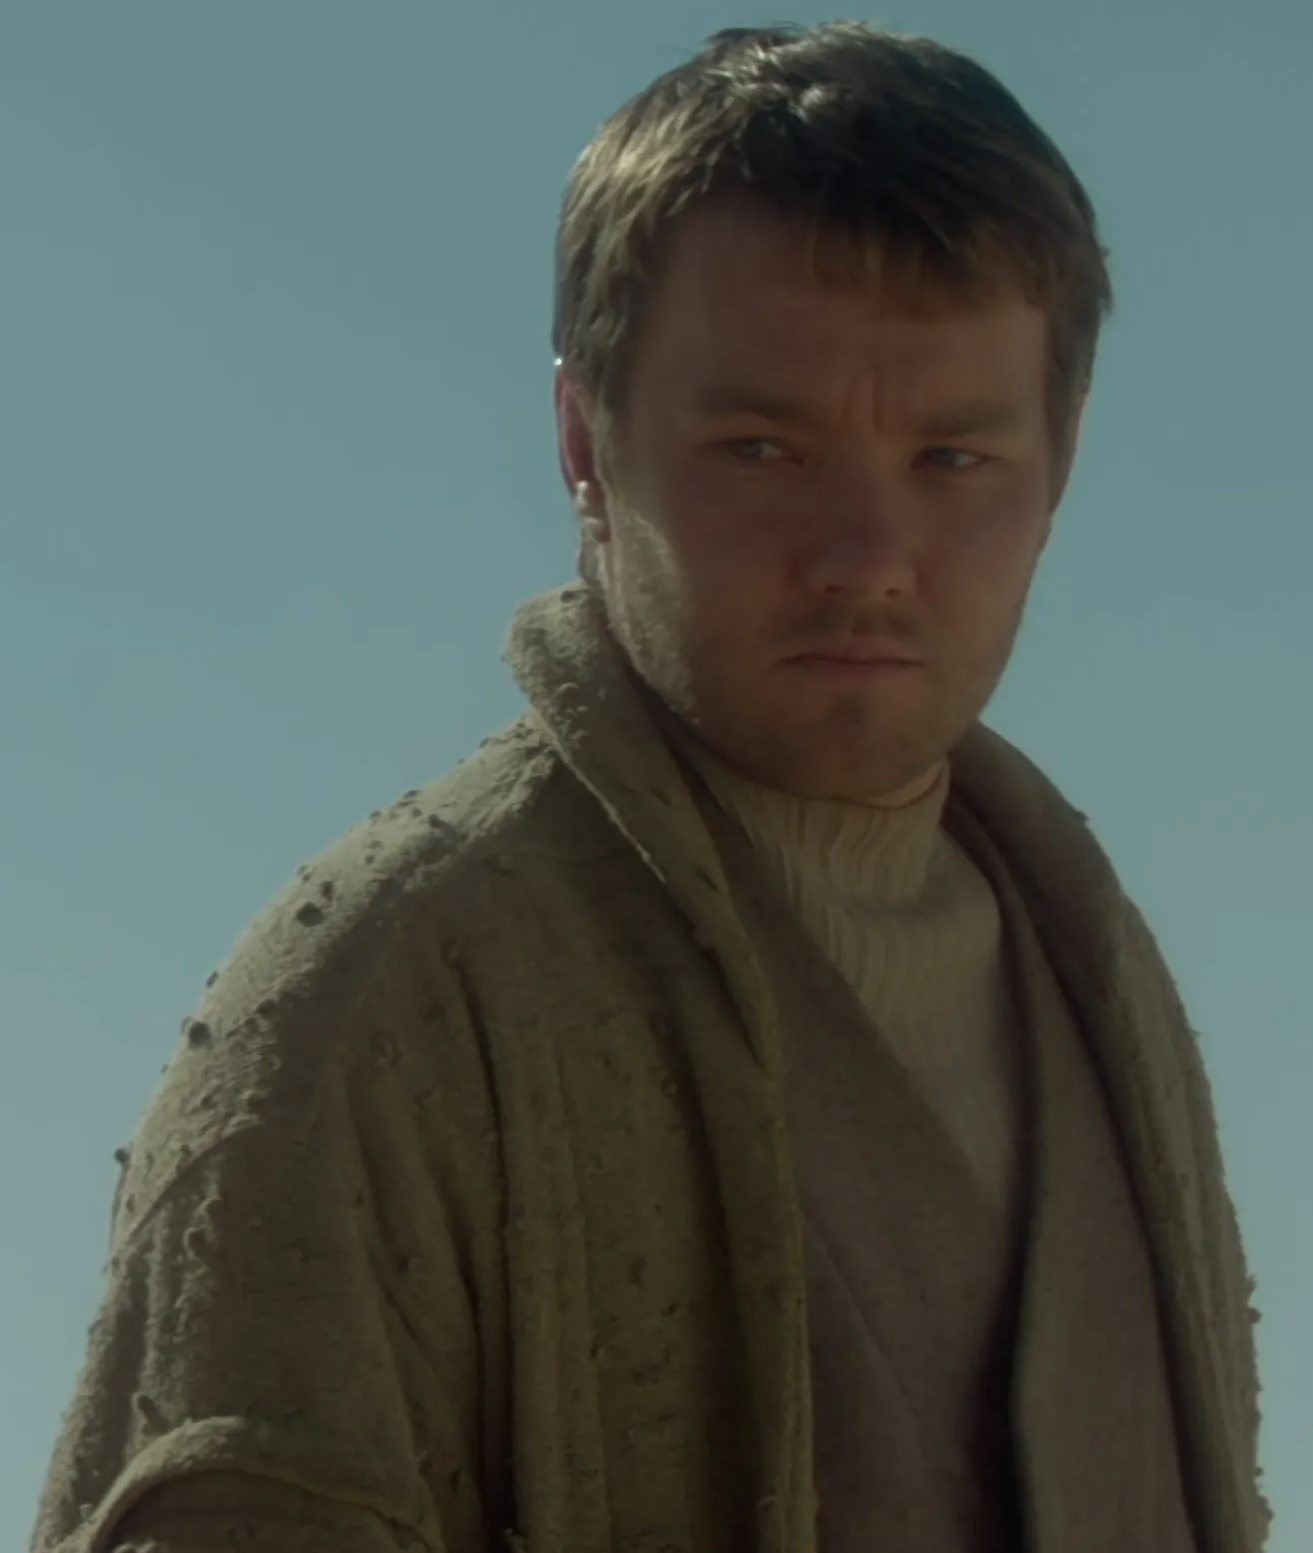 File:Joel Edgerton as Owen Lars (AOTC).jpg